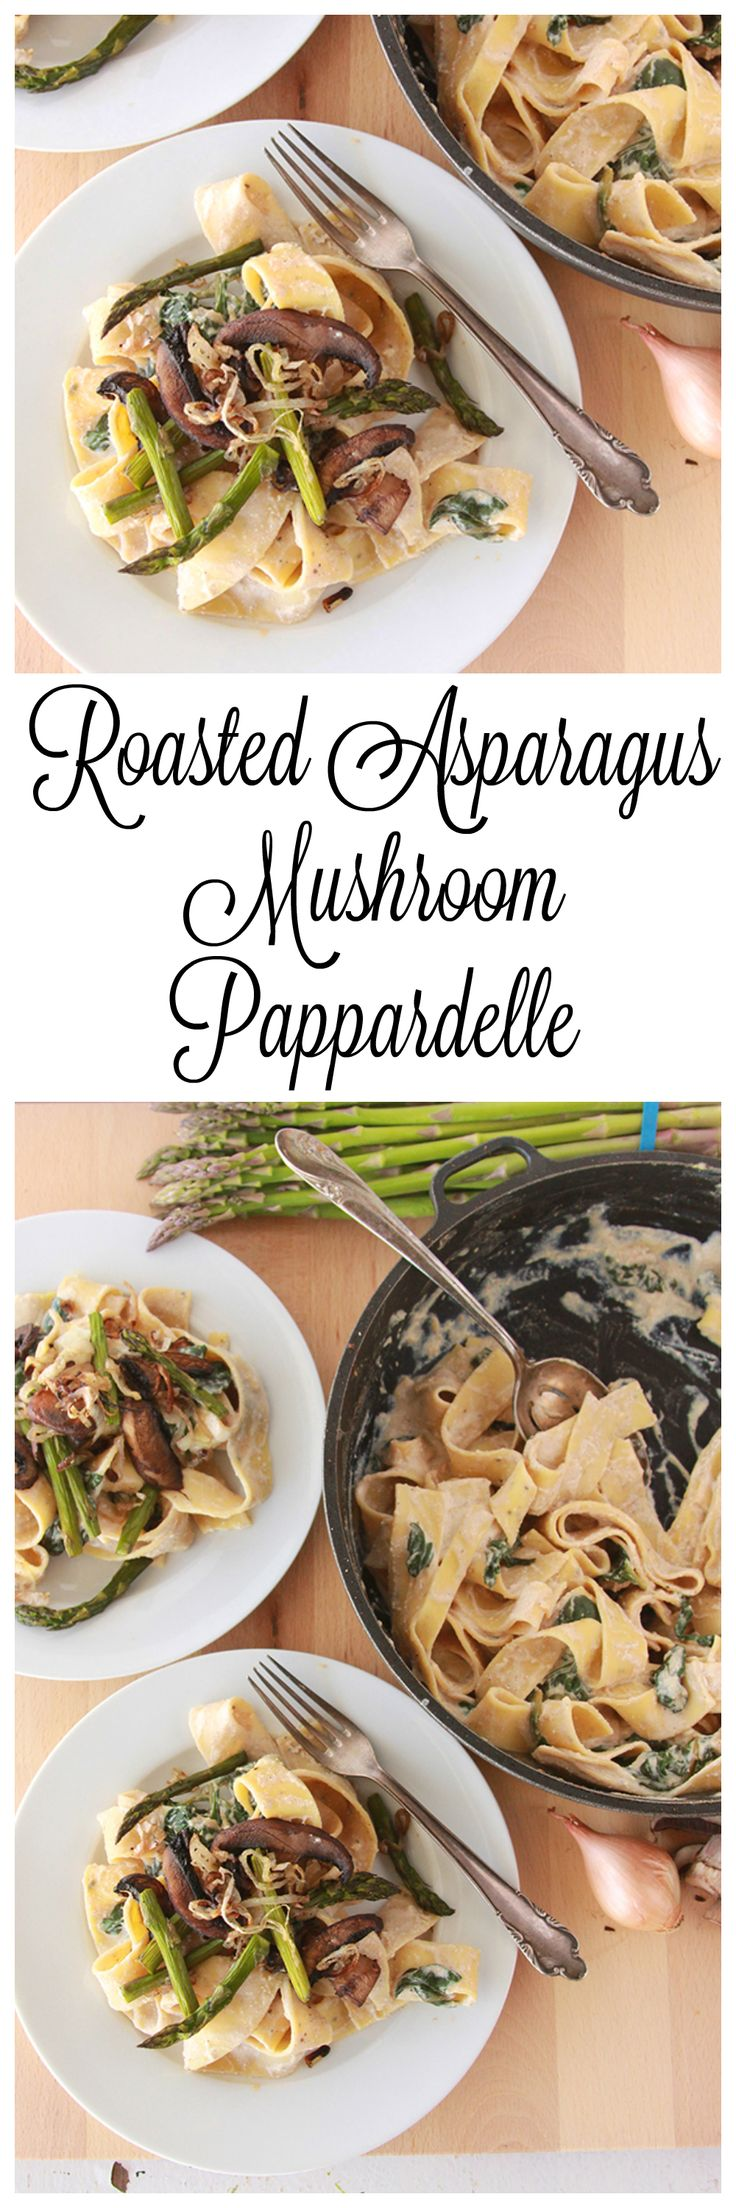 Pappardelle with Asparagus, Mushroom, and Ricotta on www.cookingwithruthie.com  is simple-to-make and delicious!